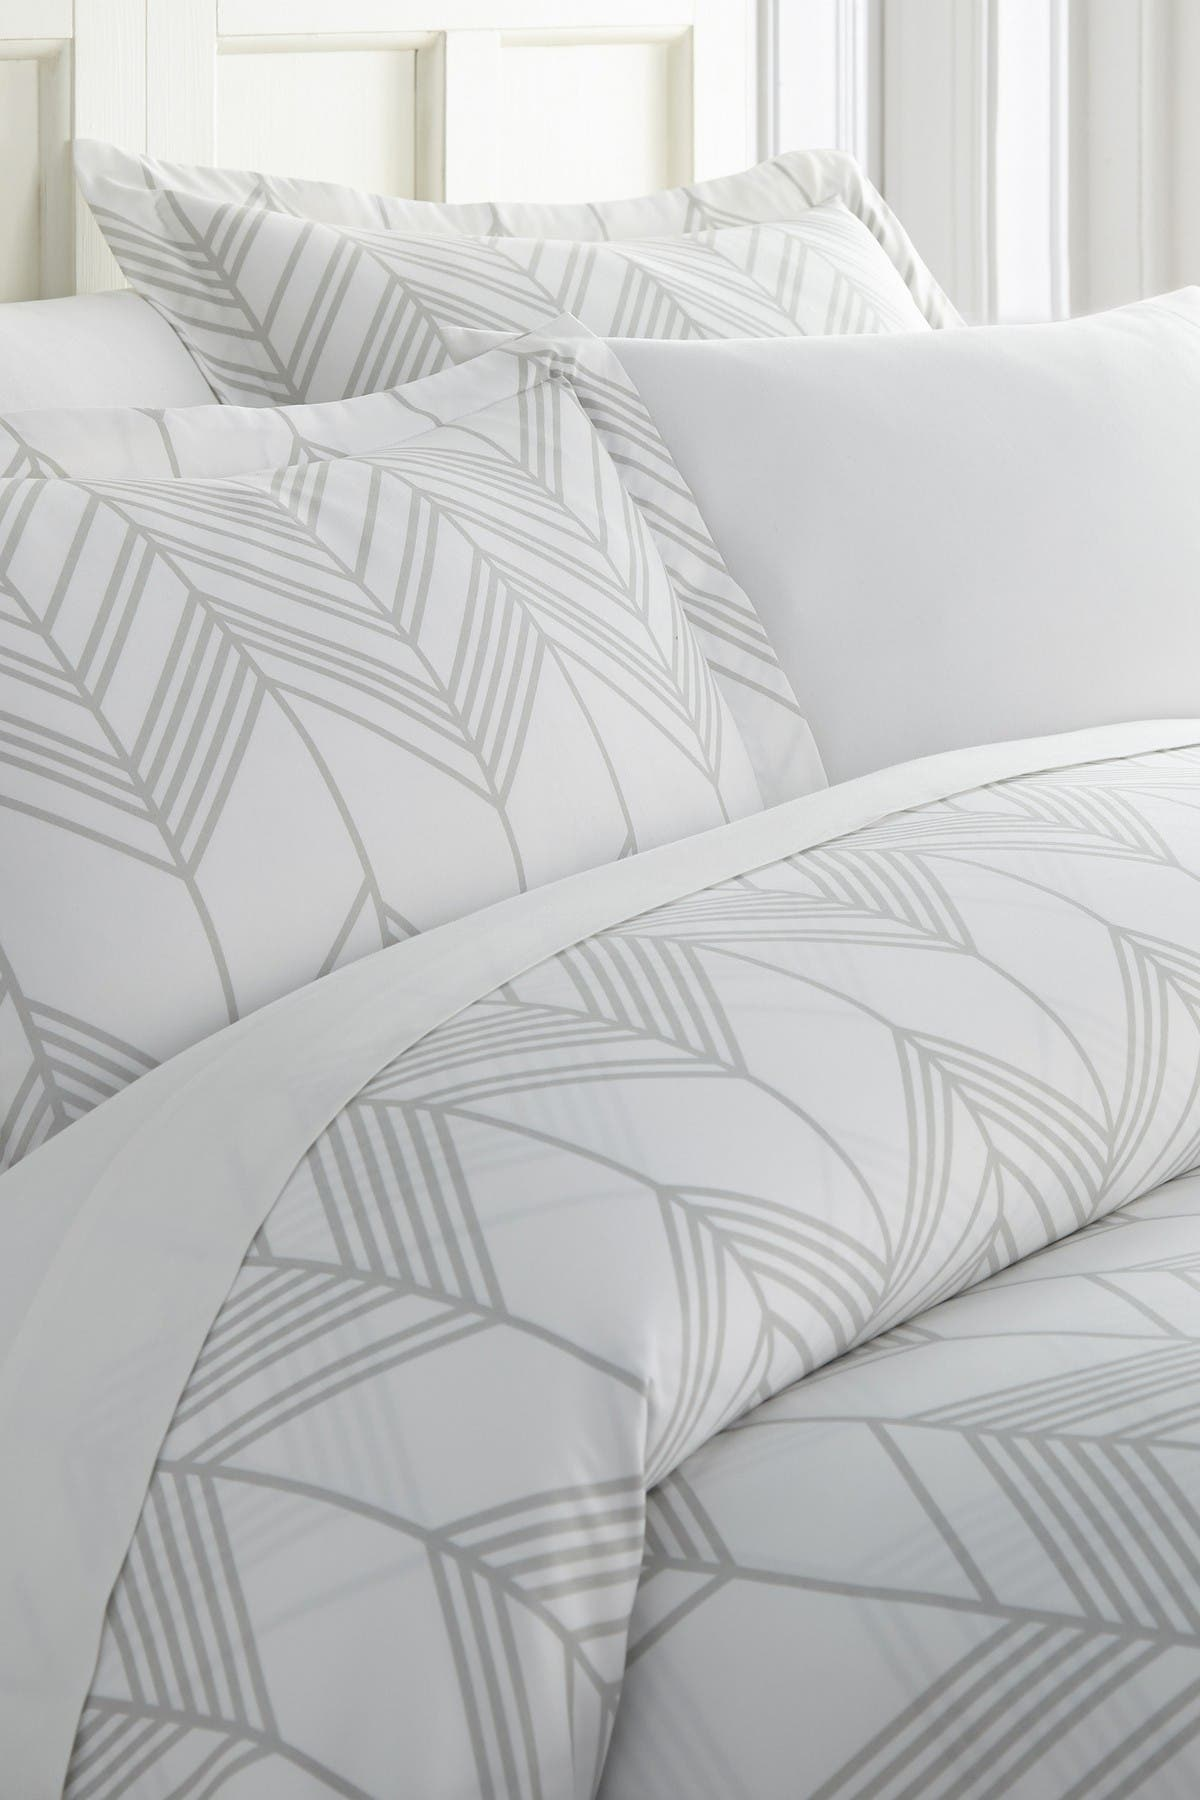 Image of IENJOY HOME Enhance And Improve Your Bedroom 3-Piece Duvet Cover Set - Light Gray - Queen